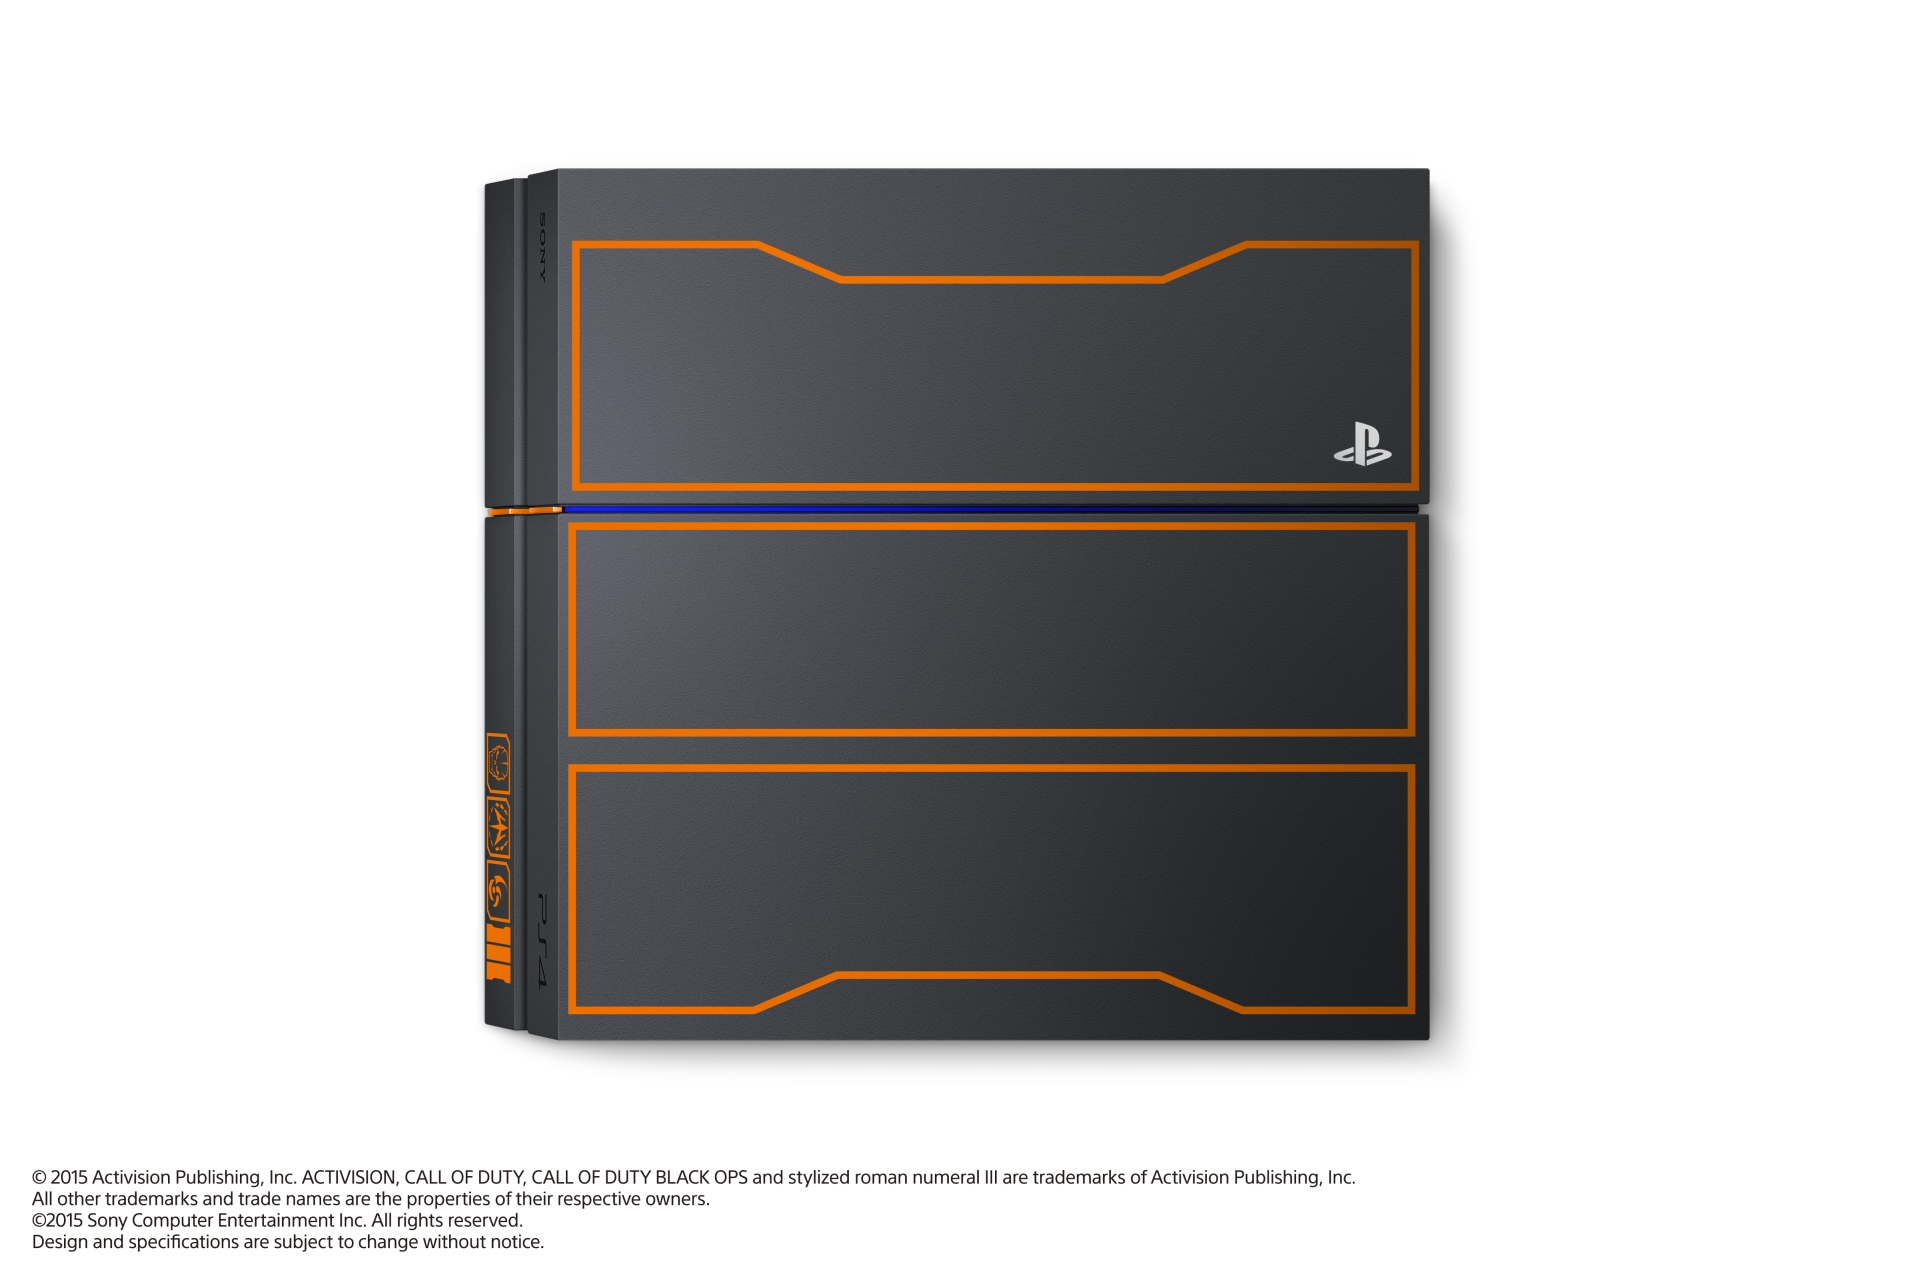 Call Of Duty Black Ops 3 Limited Edition Ps4 Bundle Announced